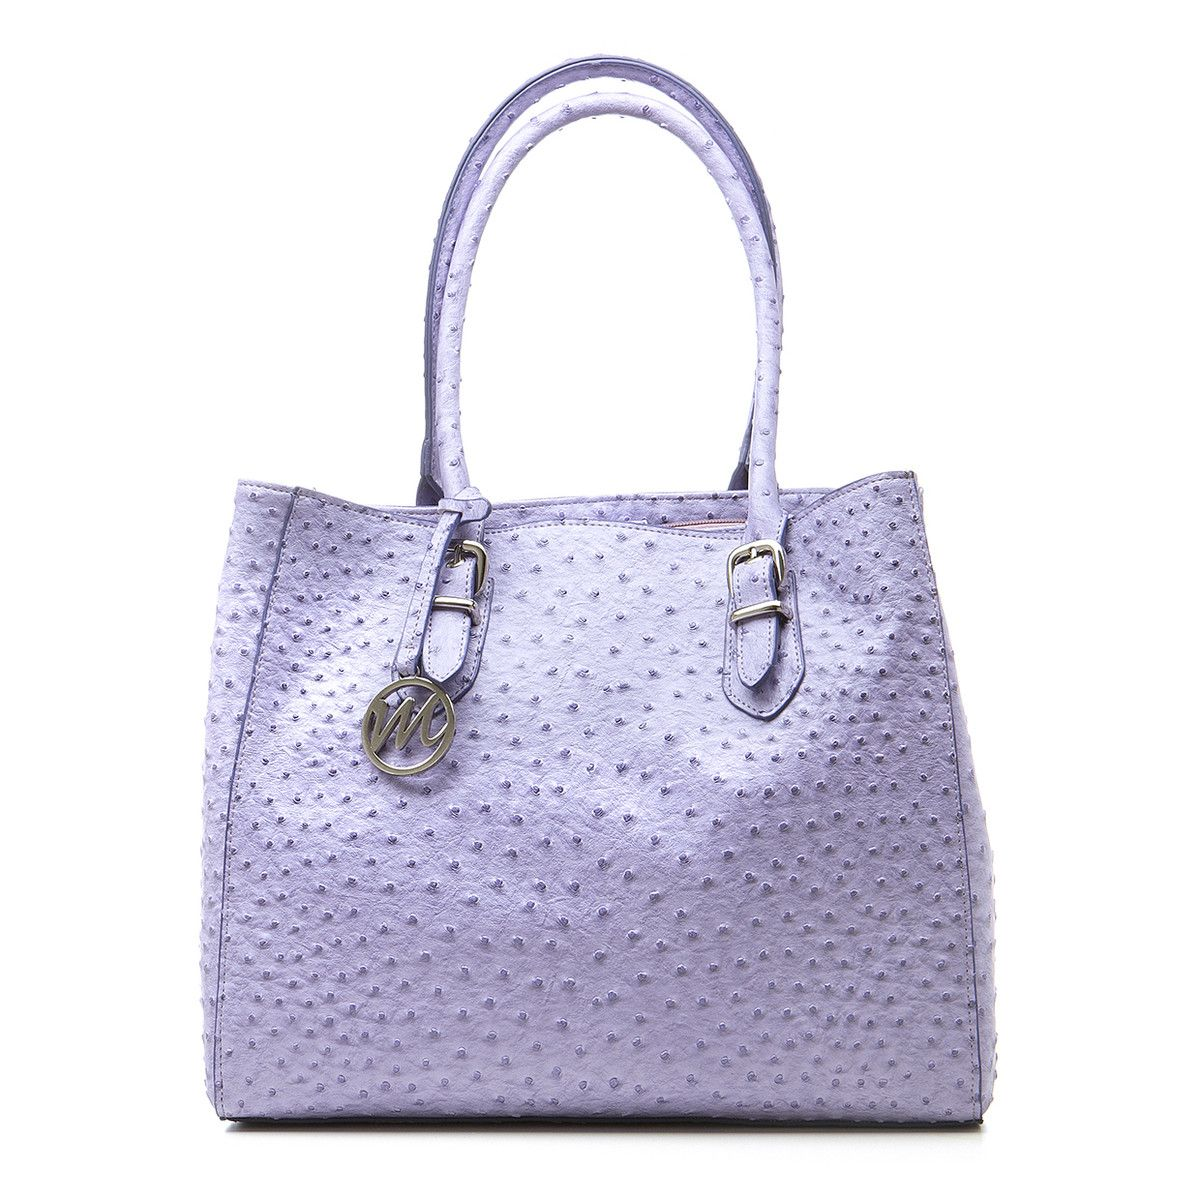 April 27. Nicole Tote Iris Purple Ostrich